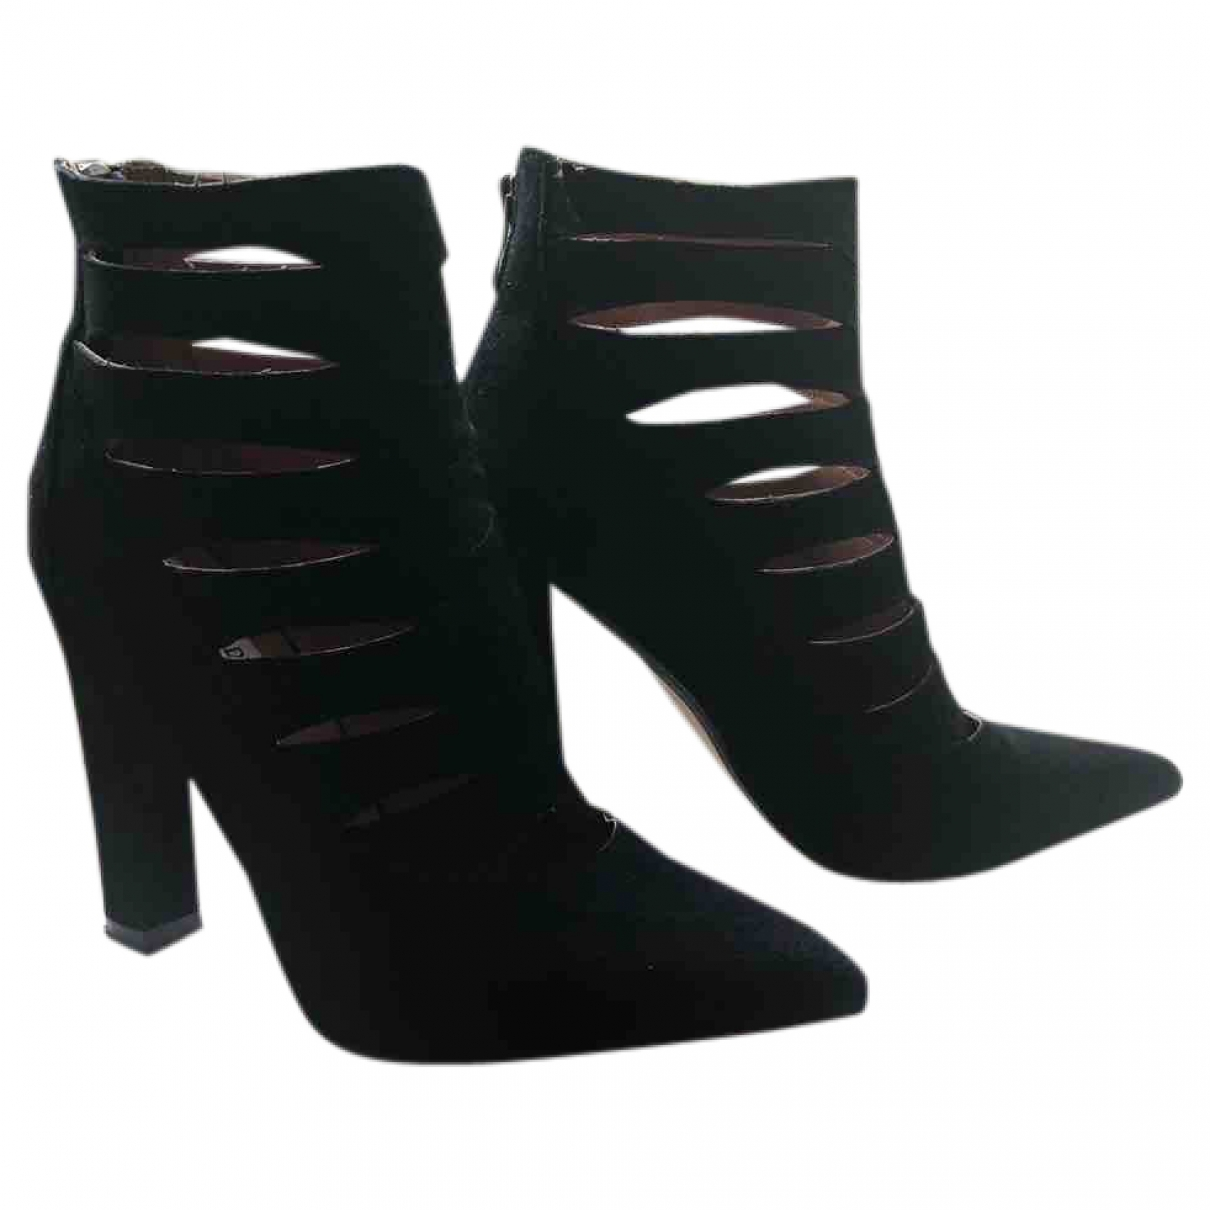 Steve Madden \N Black Suede Ankle boots for Women 5 UK